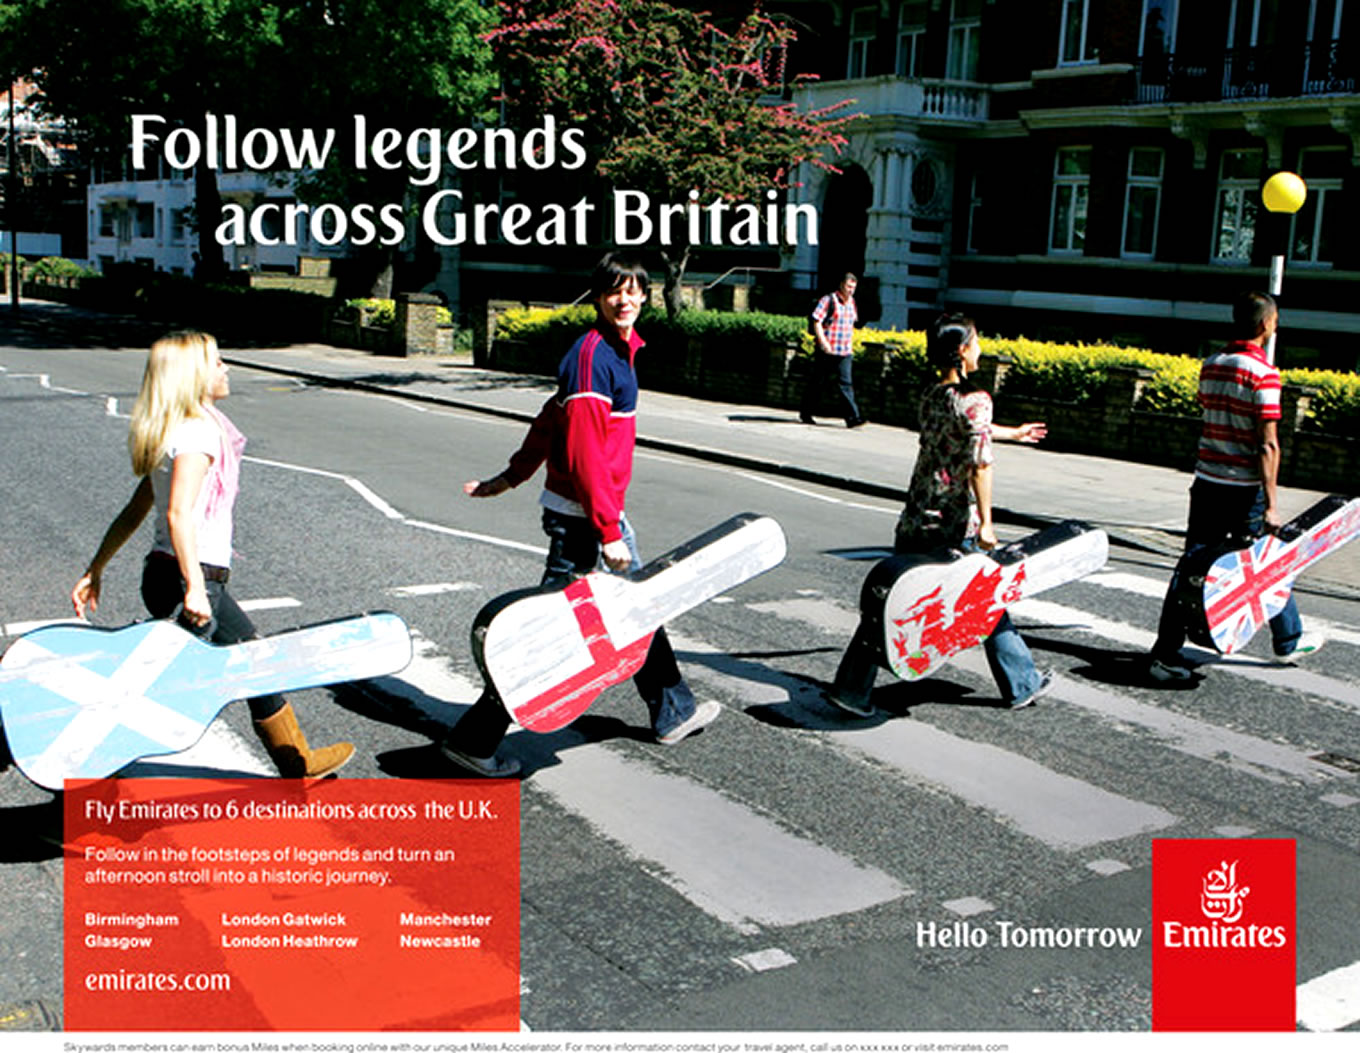 Destination Great Gritain, Hello Tomorrow Marketing Campaign by Emirates Airlines